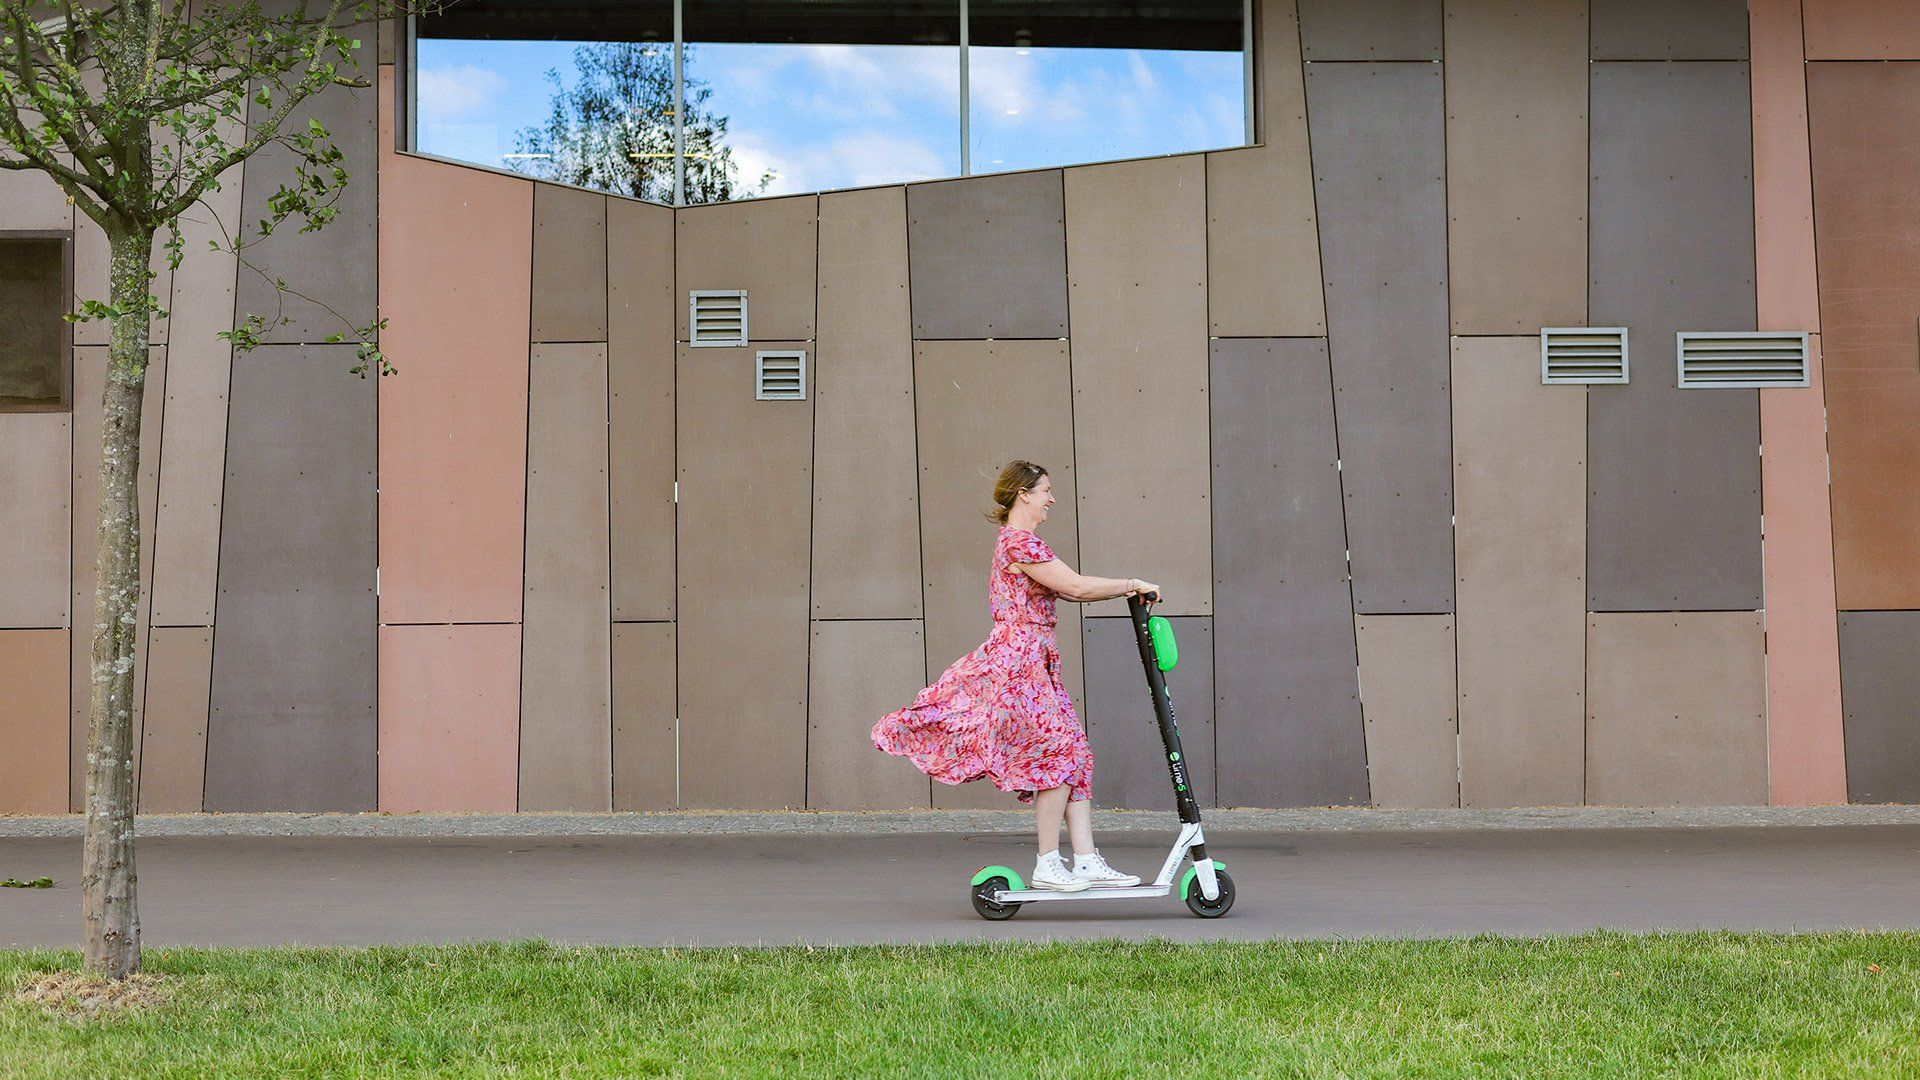 EOS M6 Mark II sample woman riding scooter